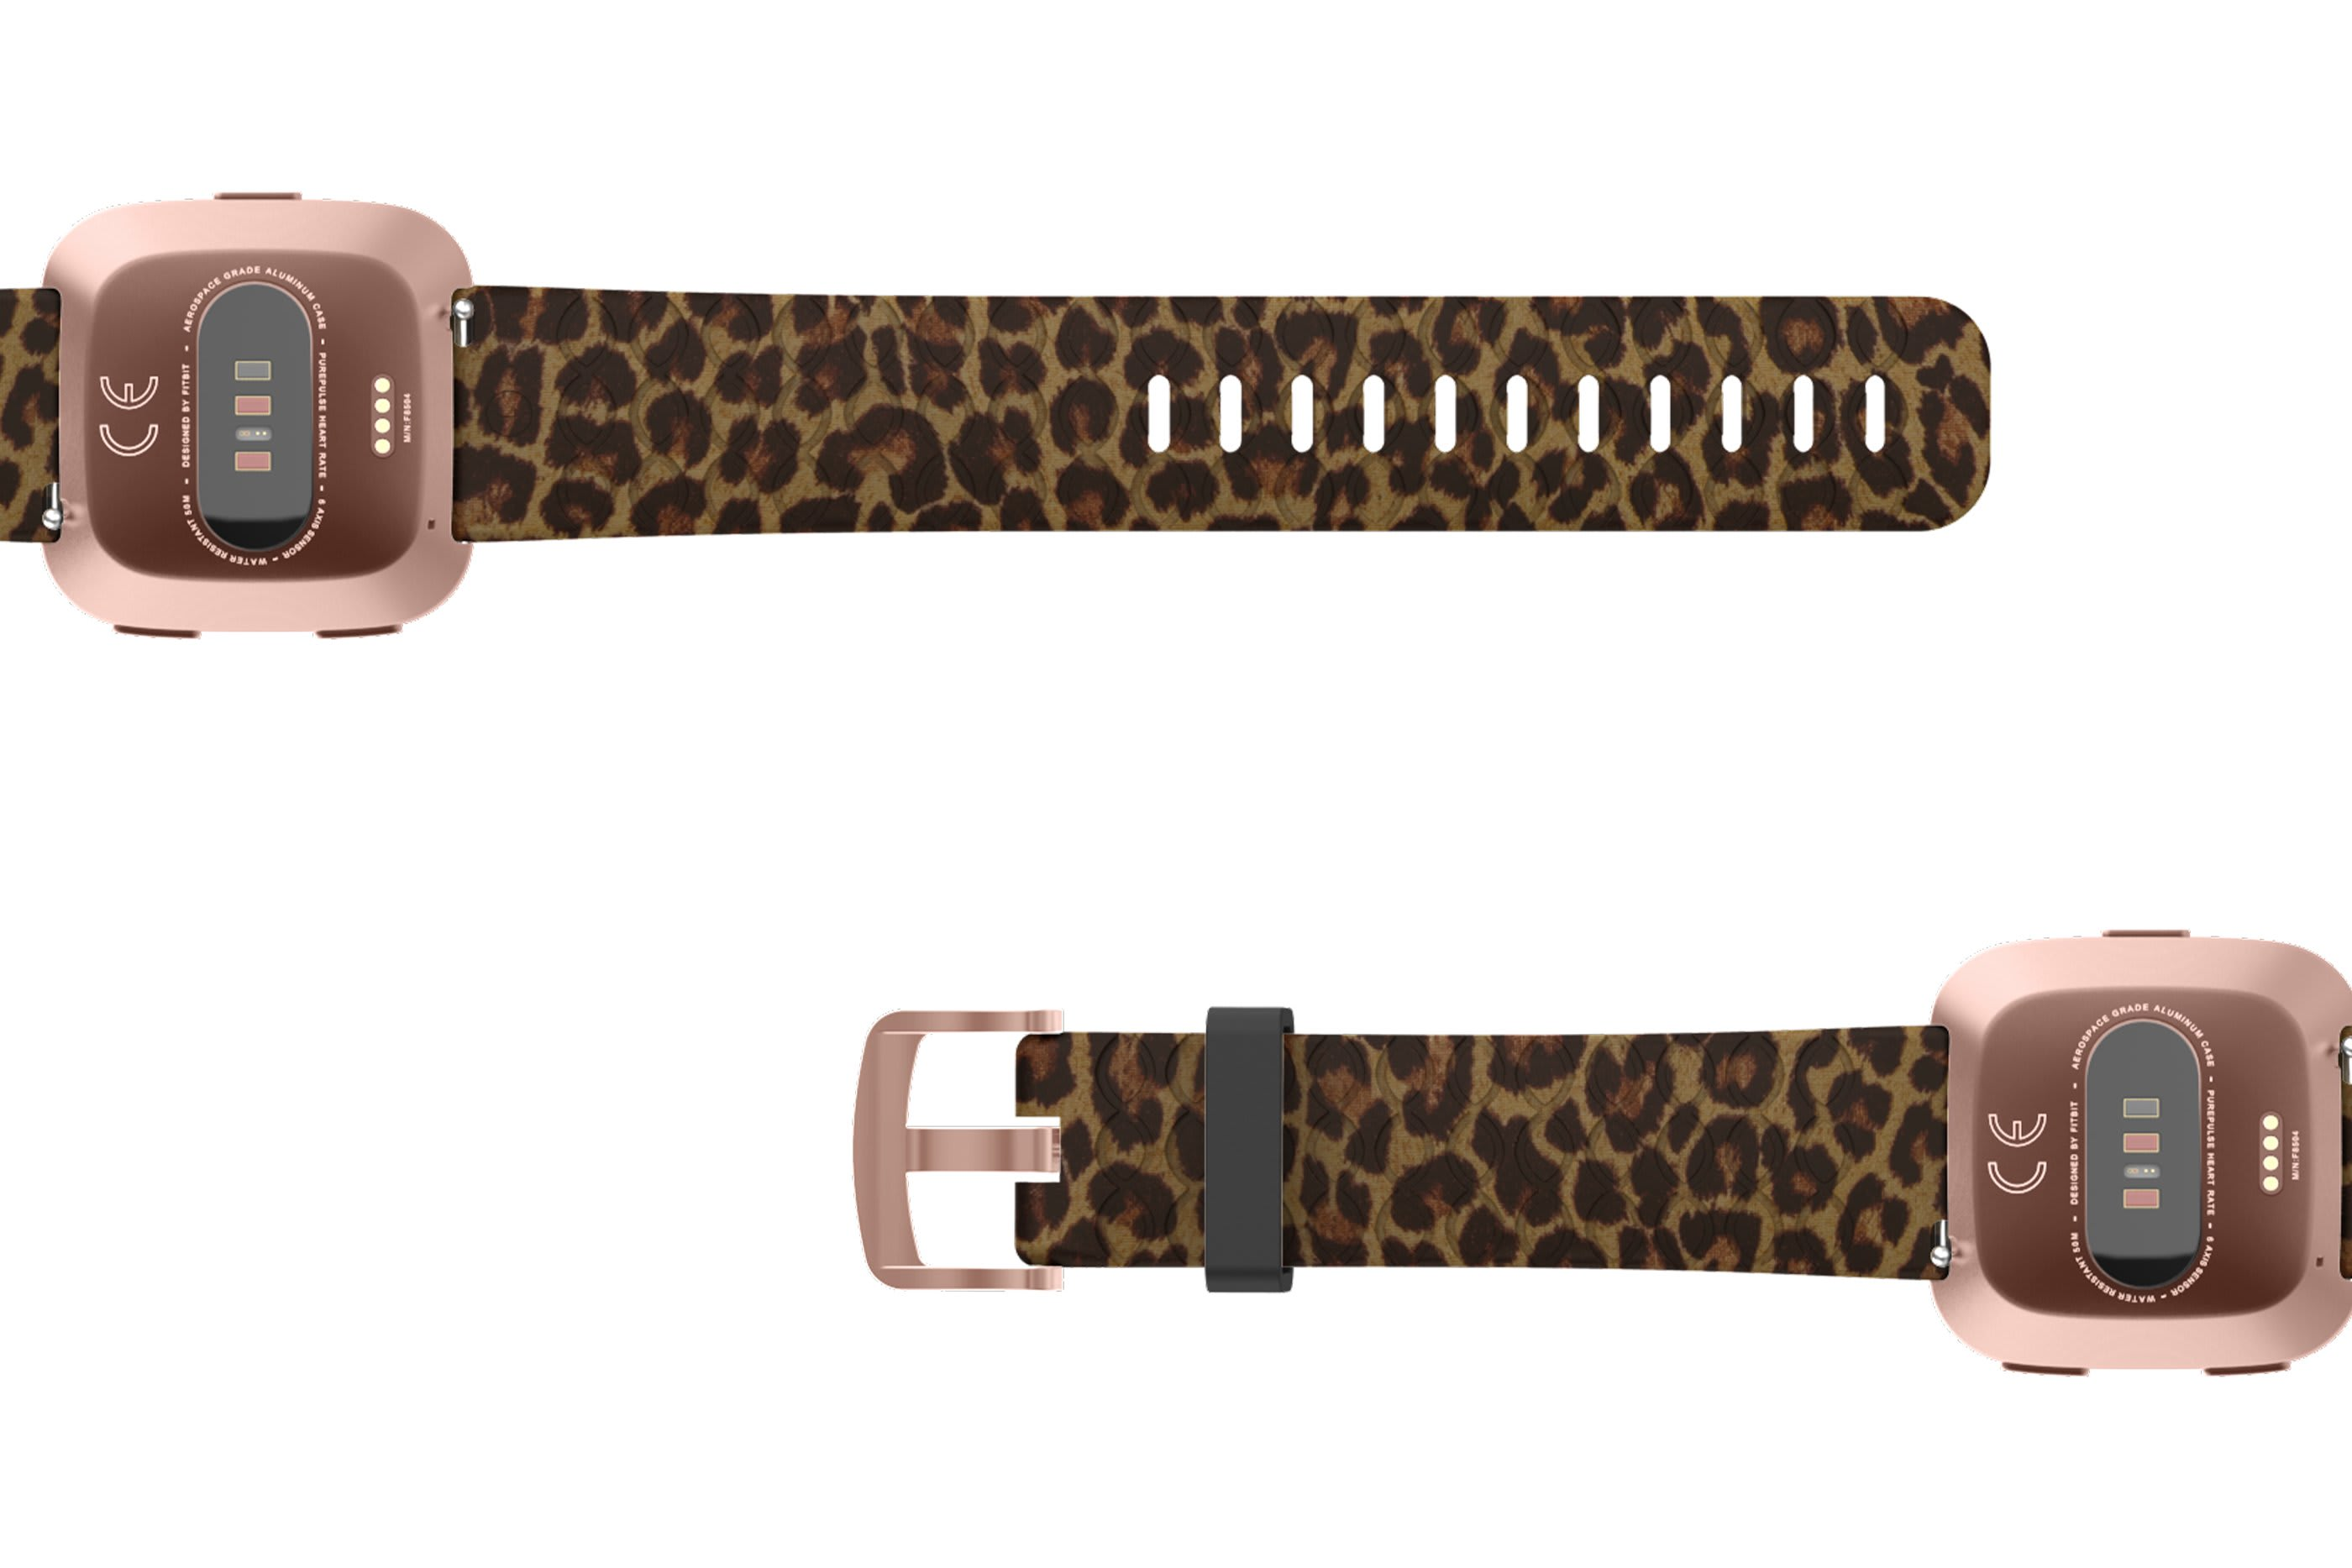 Leopard Fitbit Versa   watch band with rose gold hardware viewed bottom up